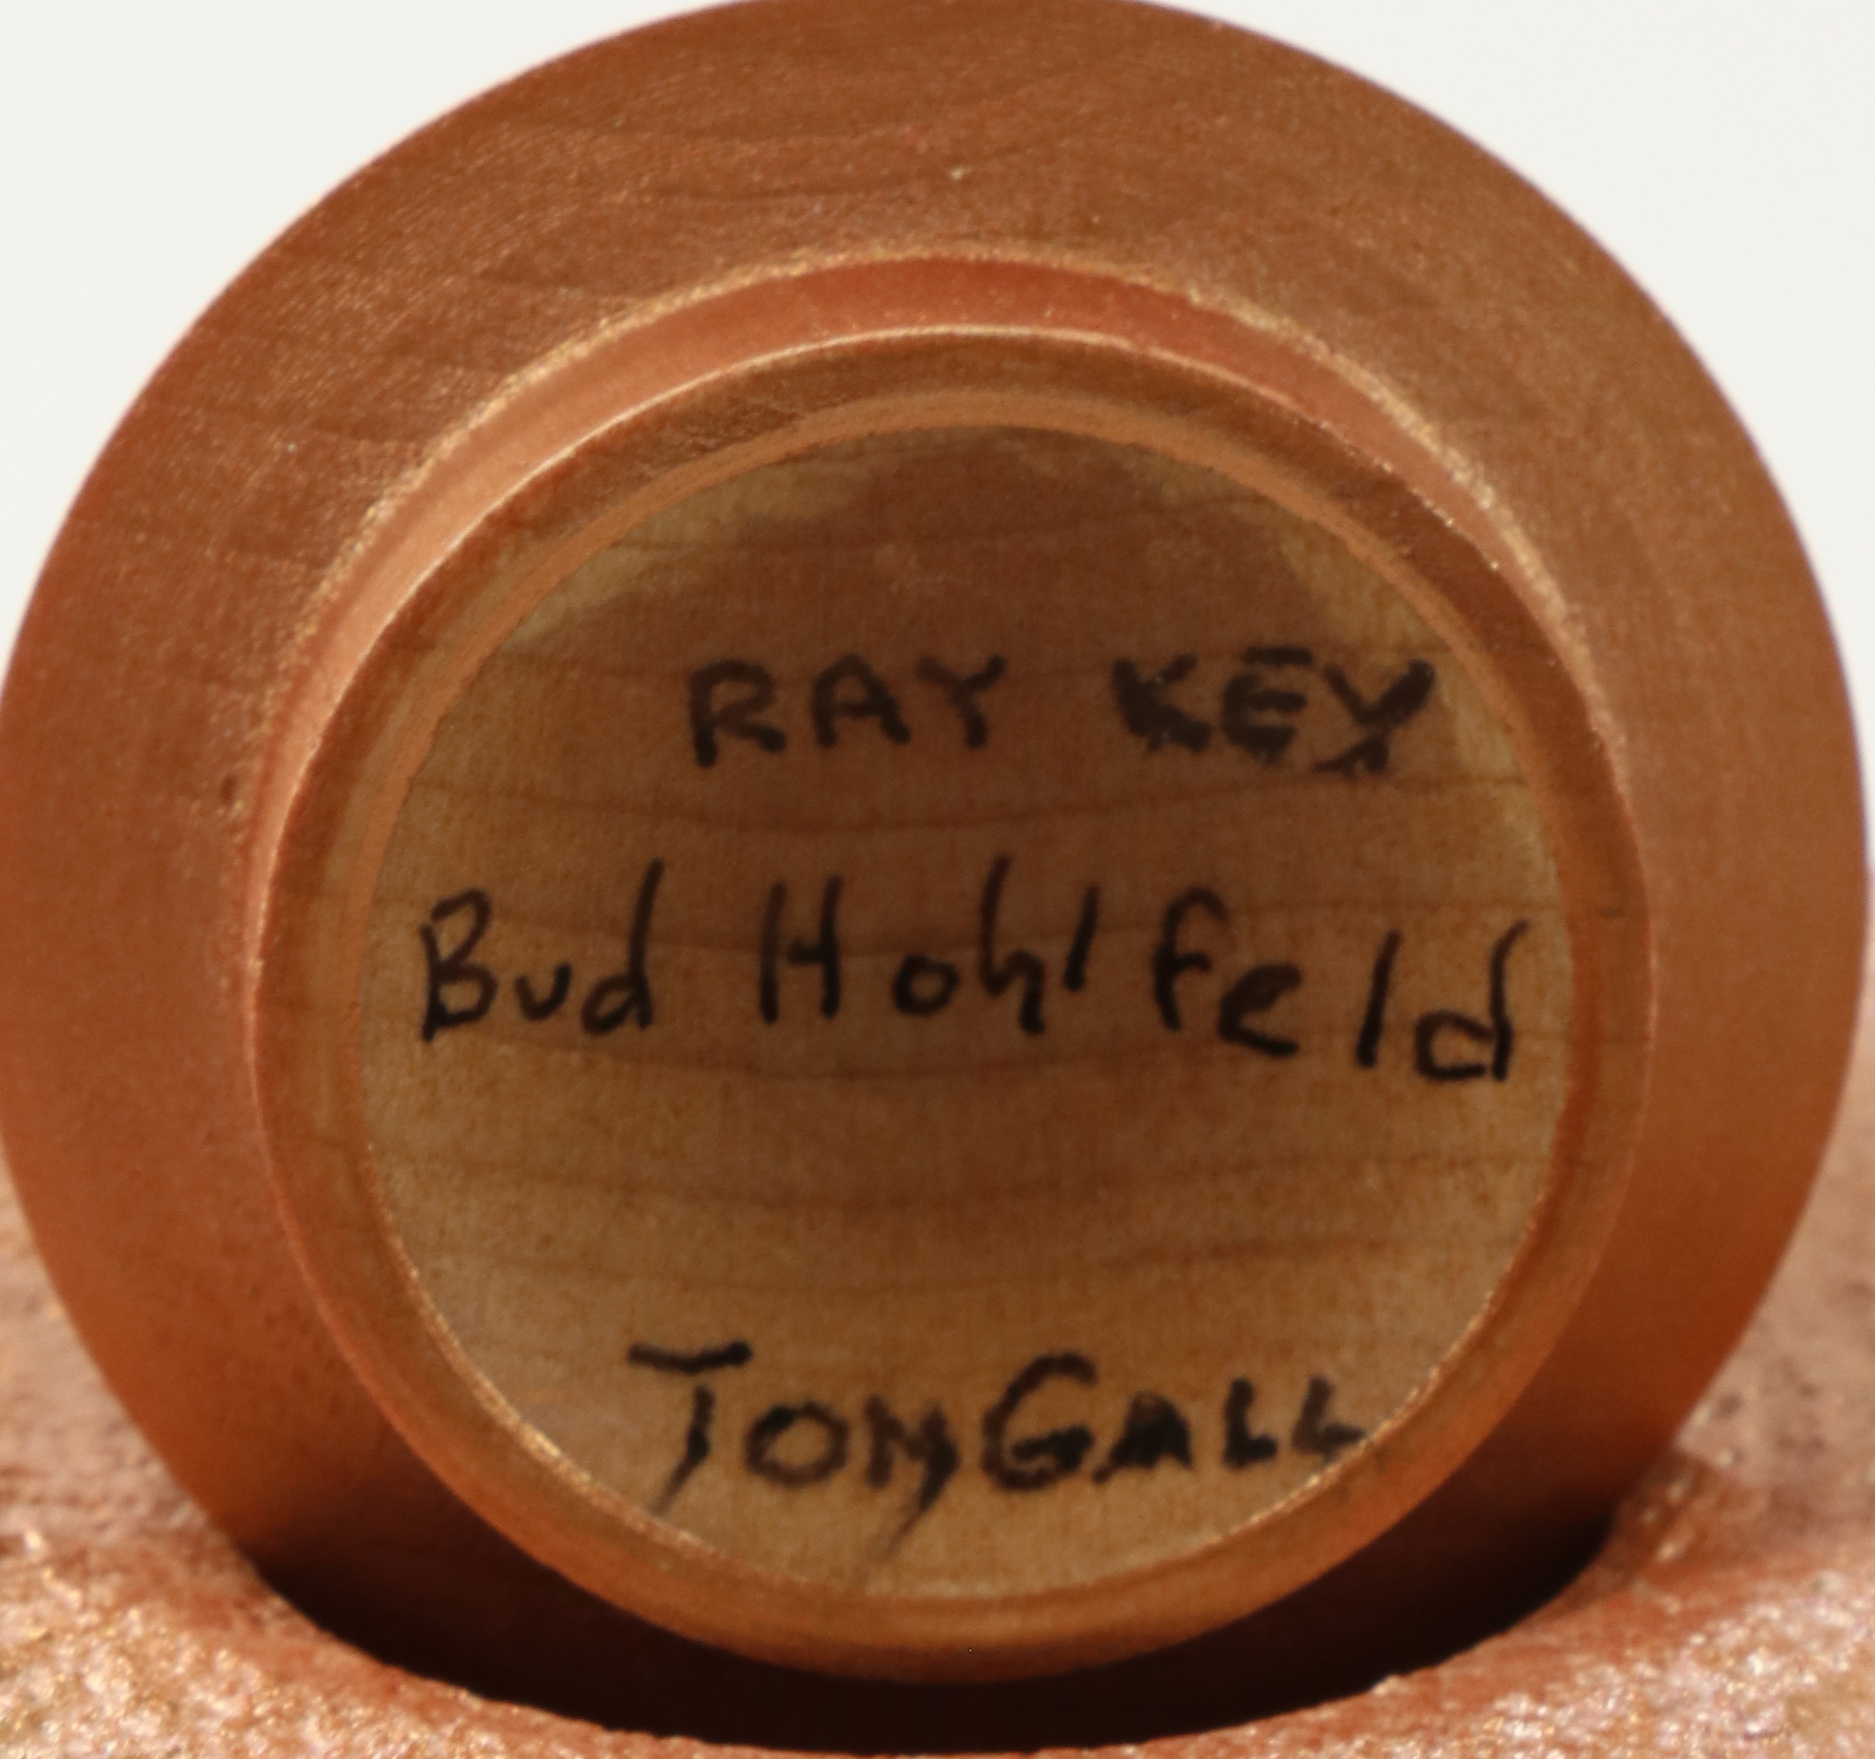 Tom Gall & Bud Hohlfeld (USA) coloured and textured hollow form 16x10cm. Signed - Image 3 of 3